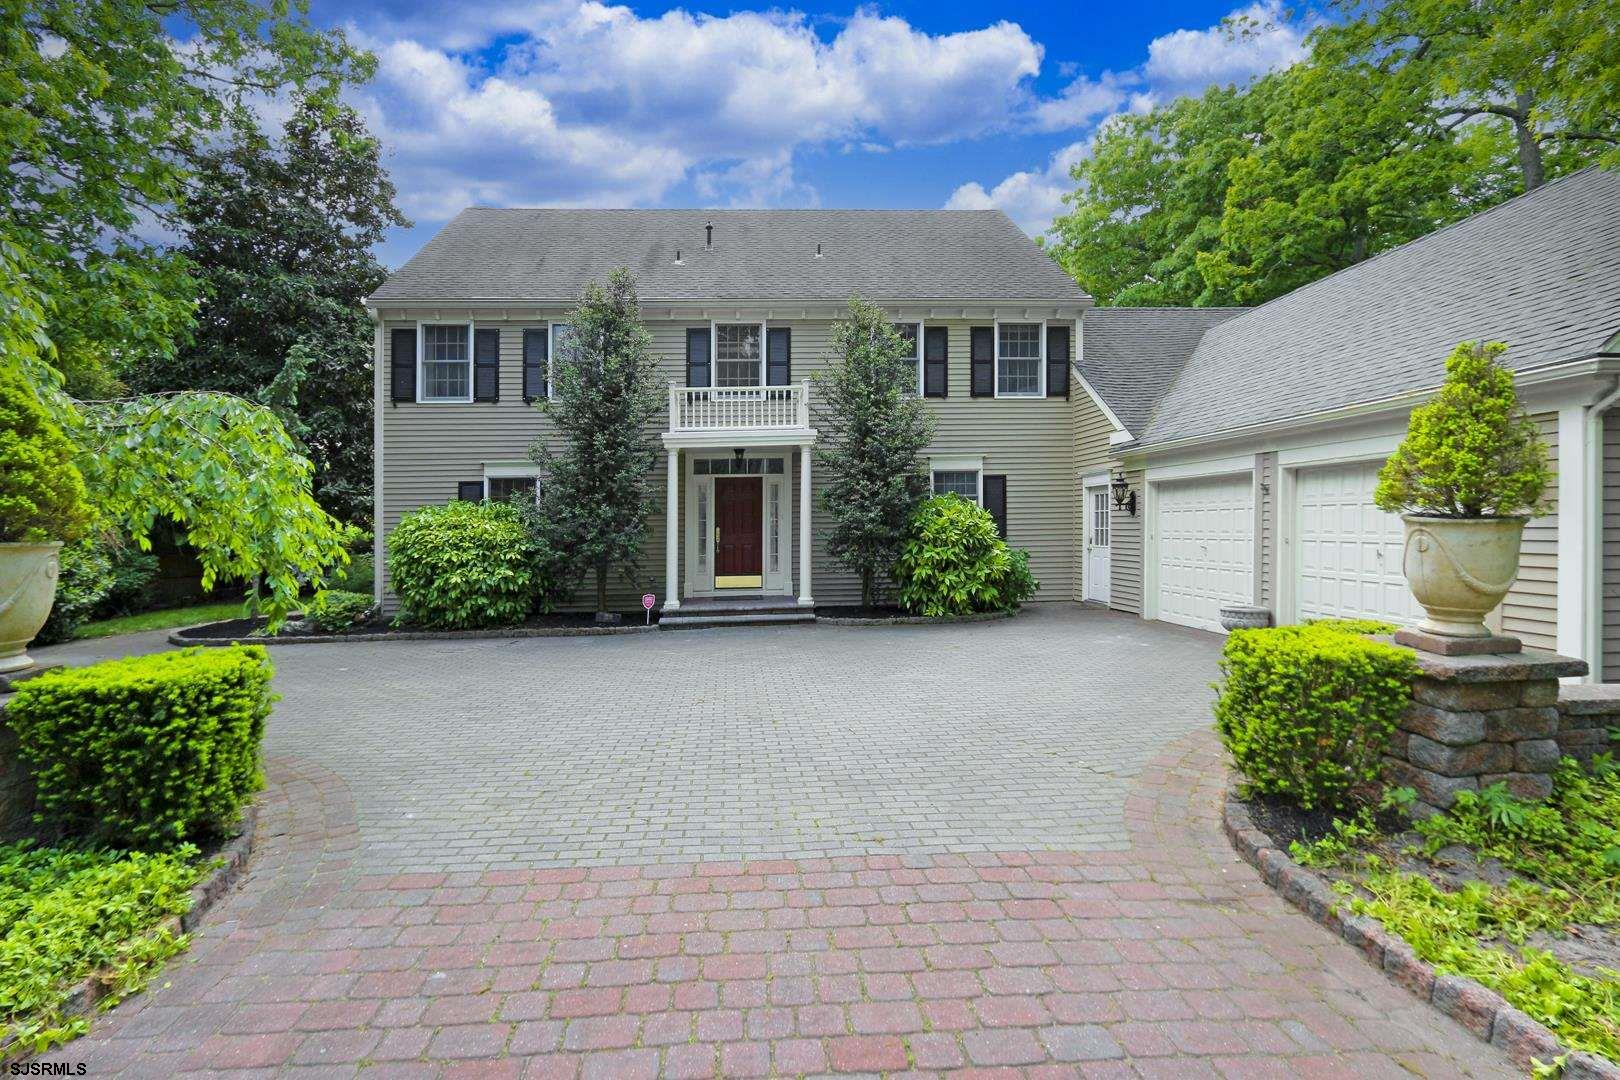 TURN YOUR DREAMS INTO REALITY!!! This opportunity won't last long!  Stunning home located in the des